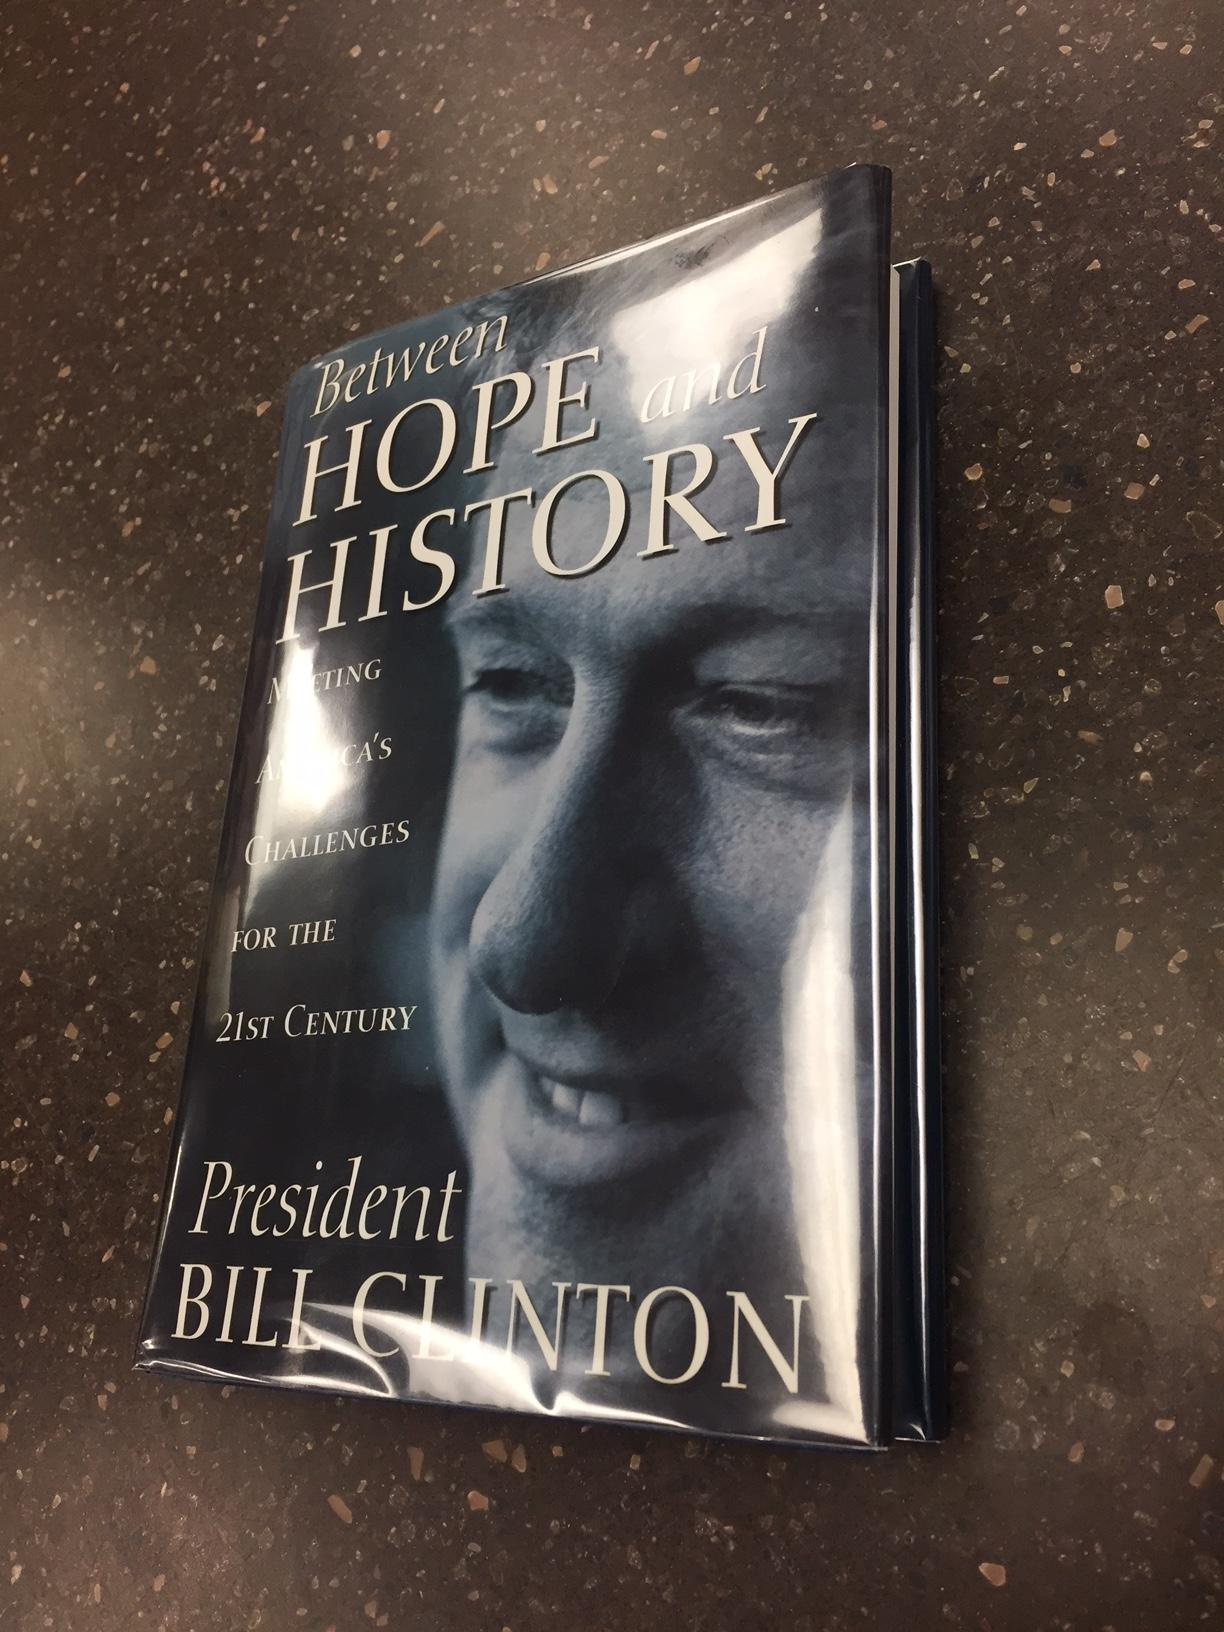 BETWEEN HOPE AND HISTORY - MEETING AMERICA'S CHALLENGES FOR THE 21ST CENTURY [SIGNED]. Bill Clinton.